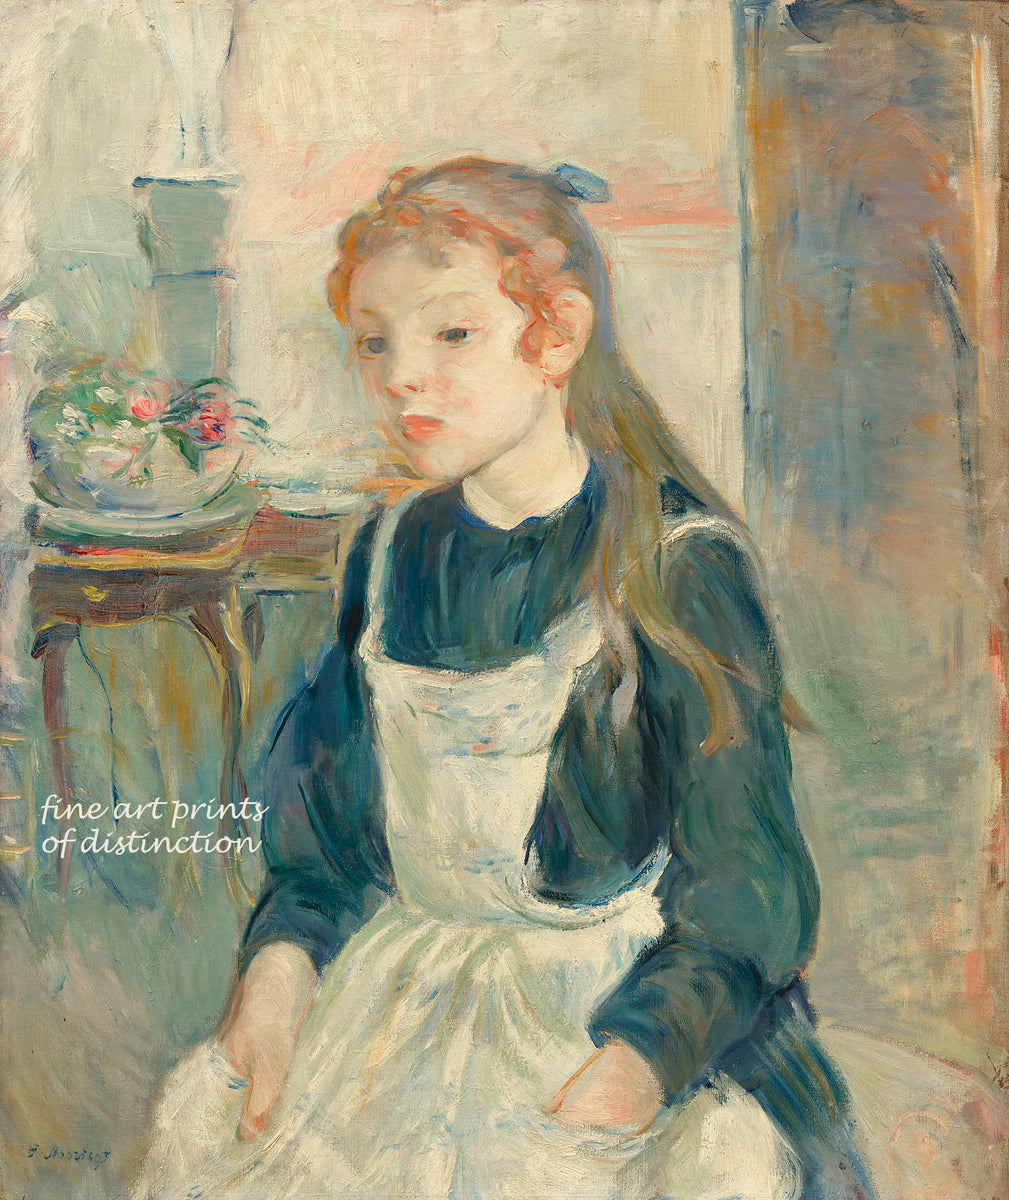 Young Girl with an Apron painted by Berthe Morisot Premium Print